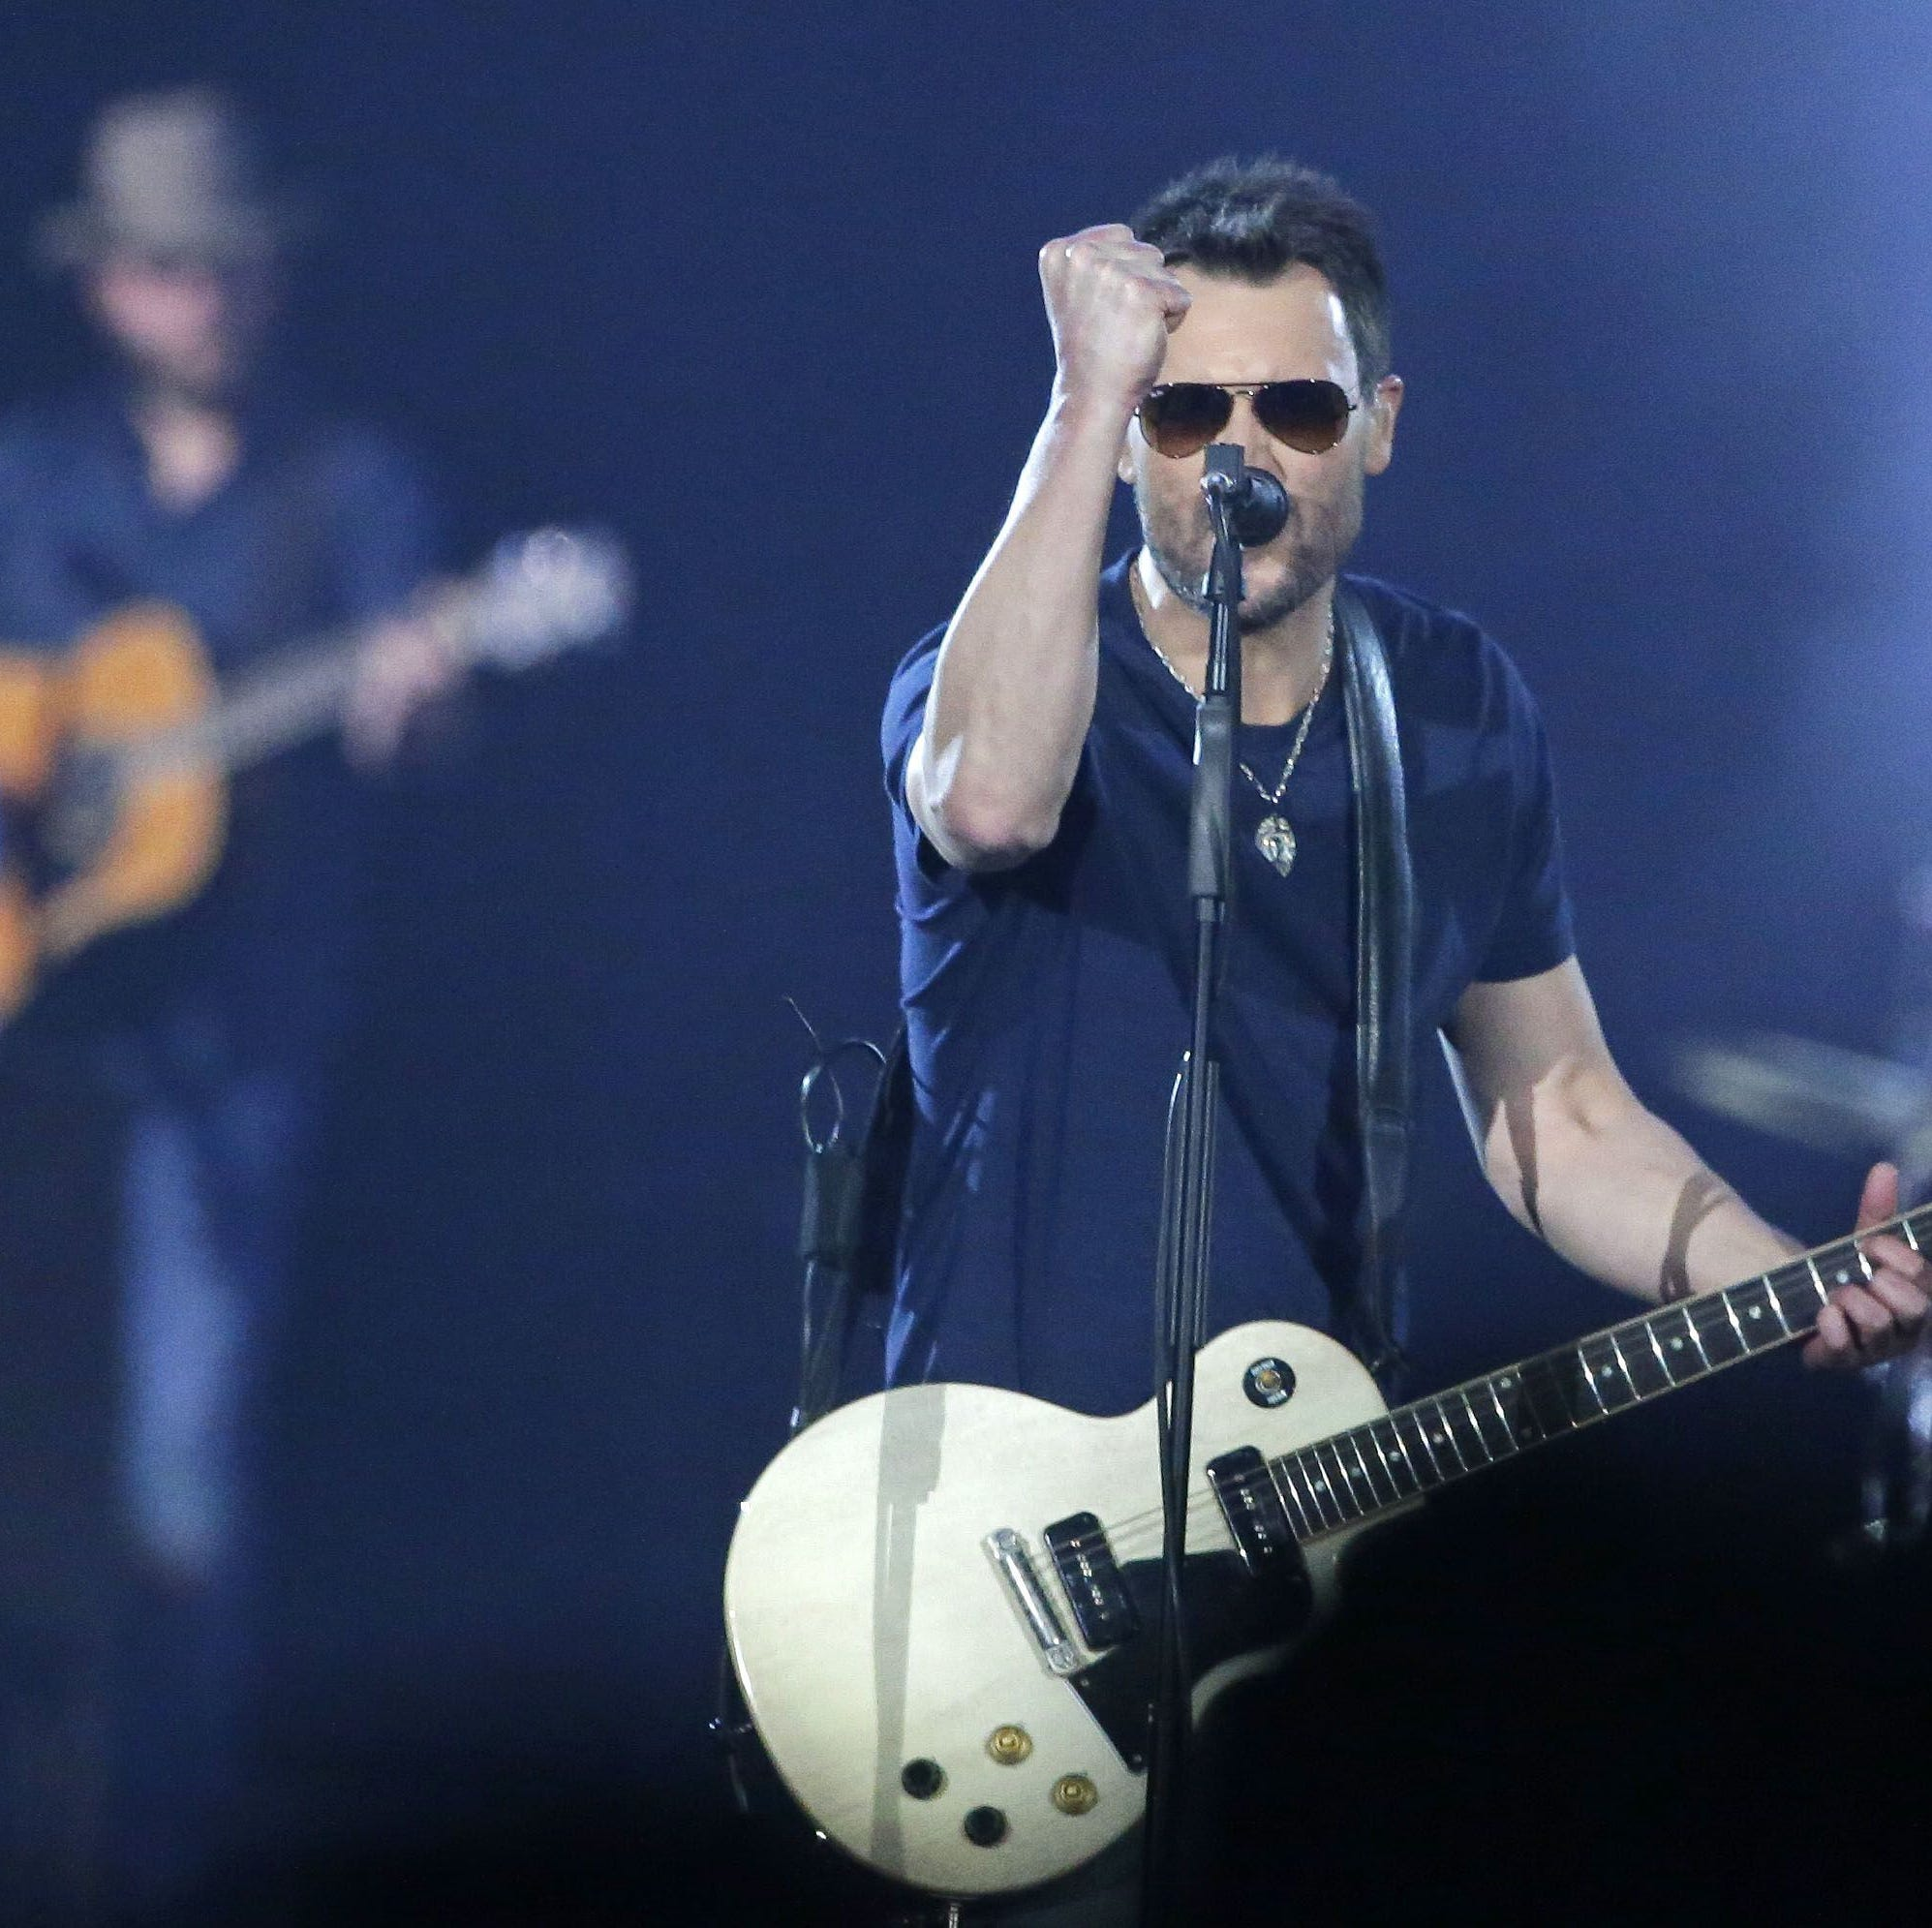 Which songs will Eric Church play in Greenville? Past set lists may provide clues